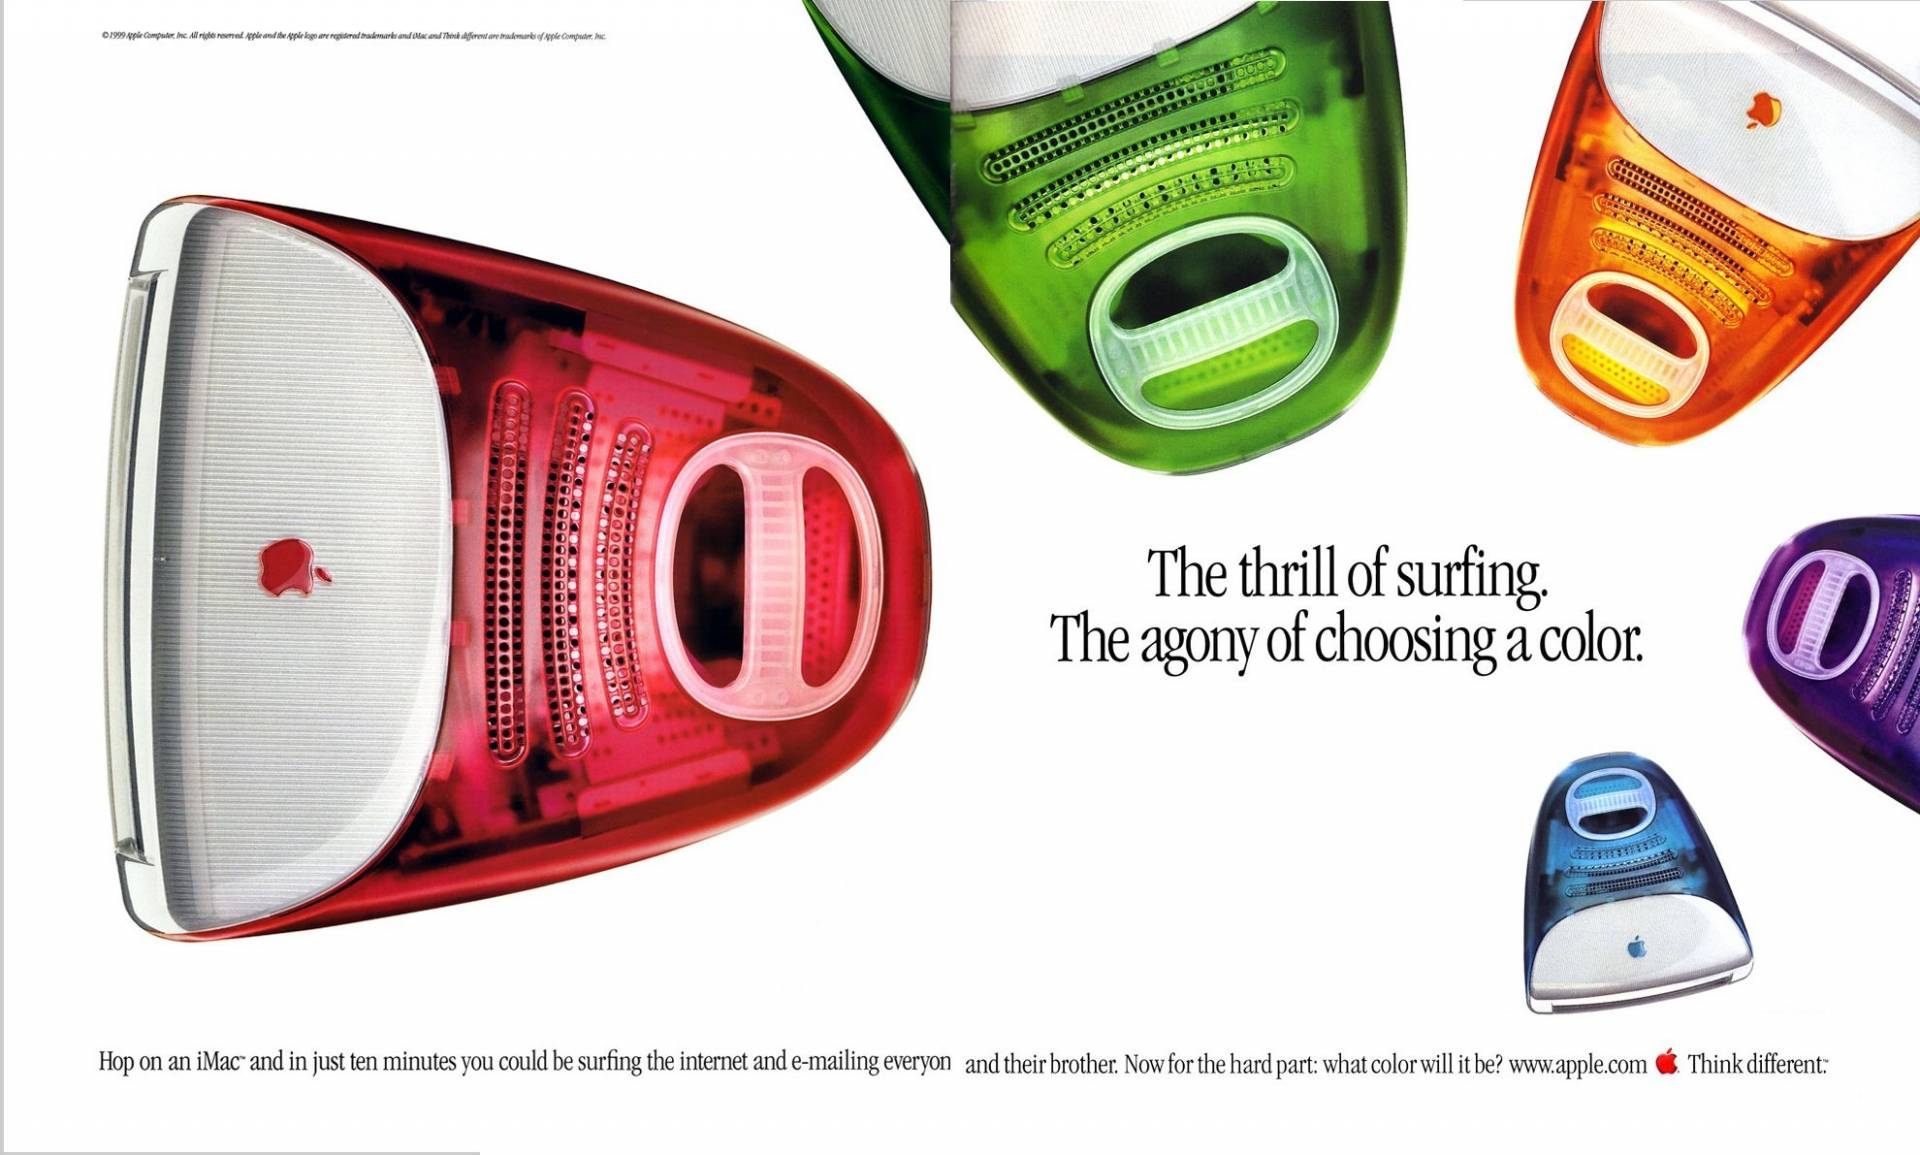 Imac G3 Ad The Thrill Of Surfing